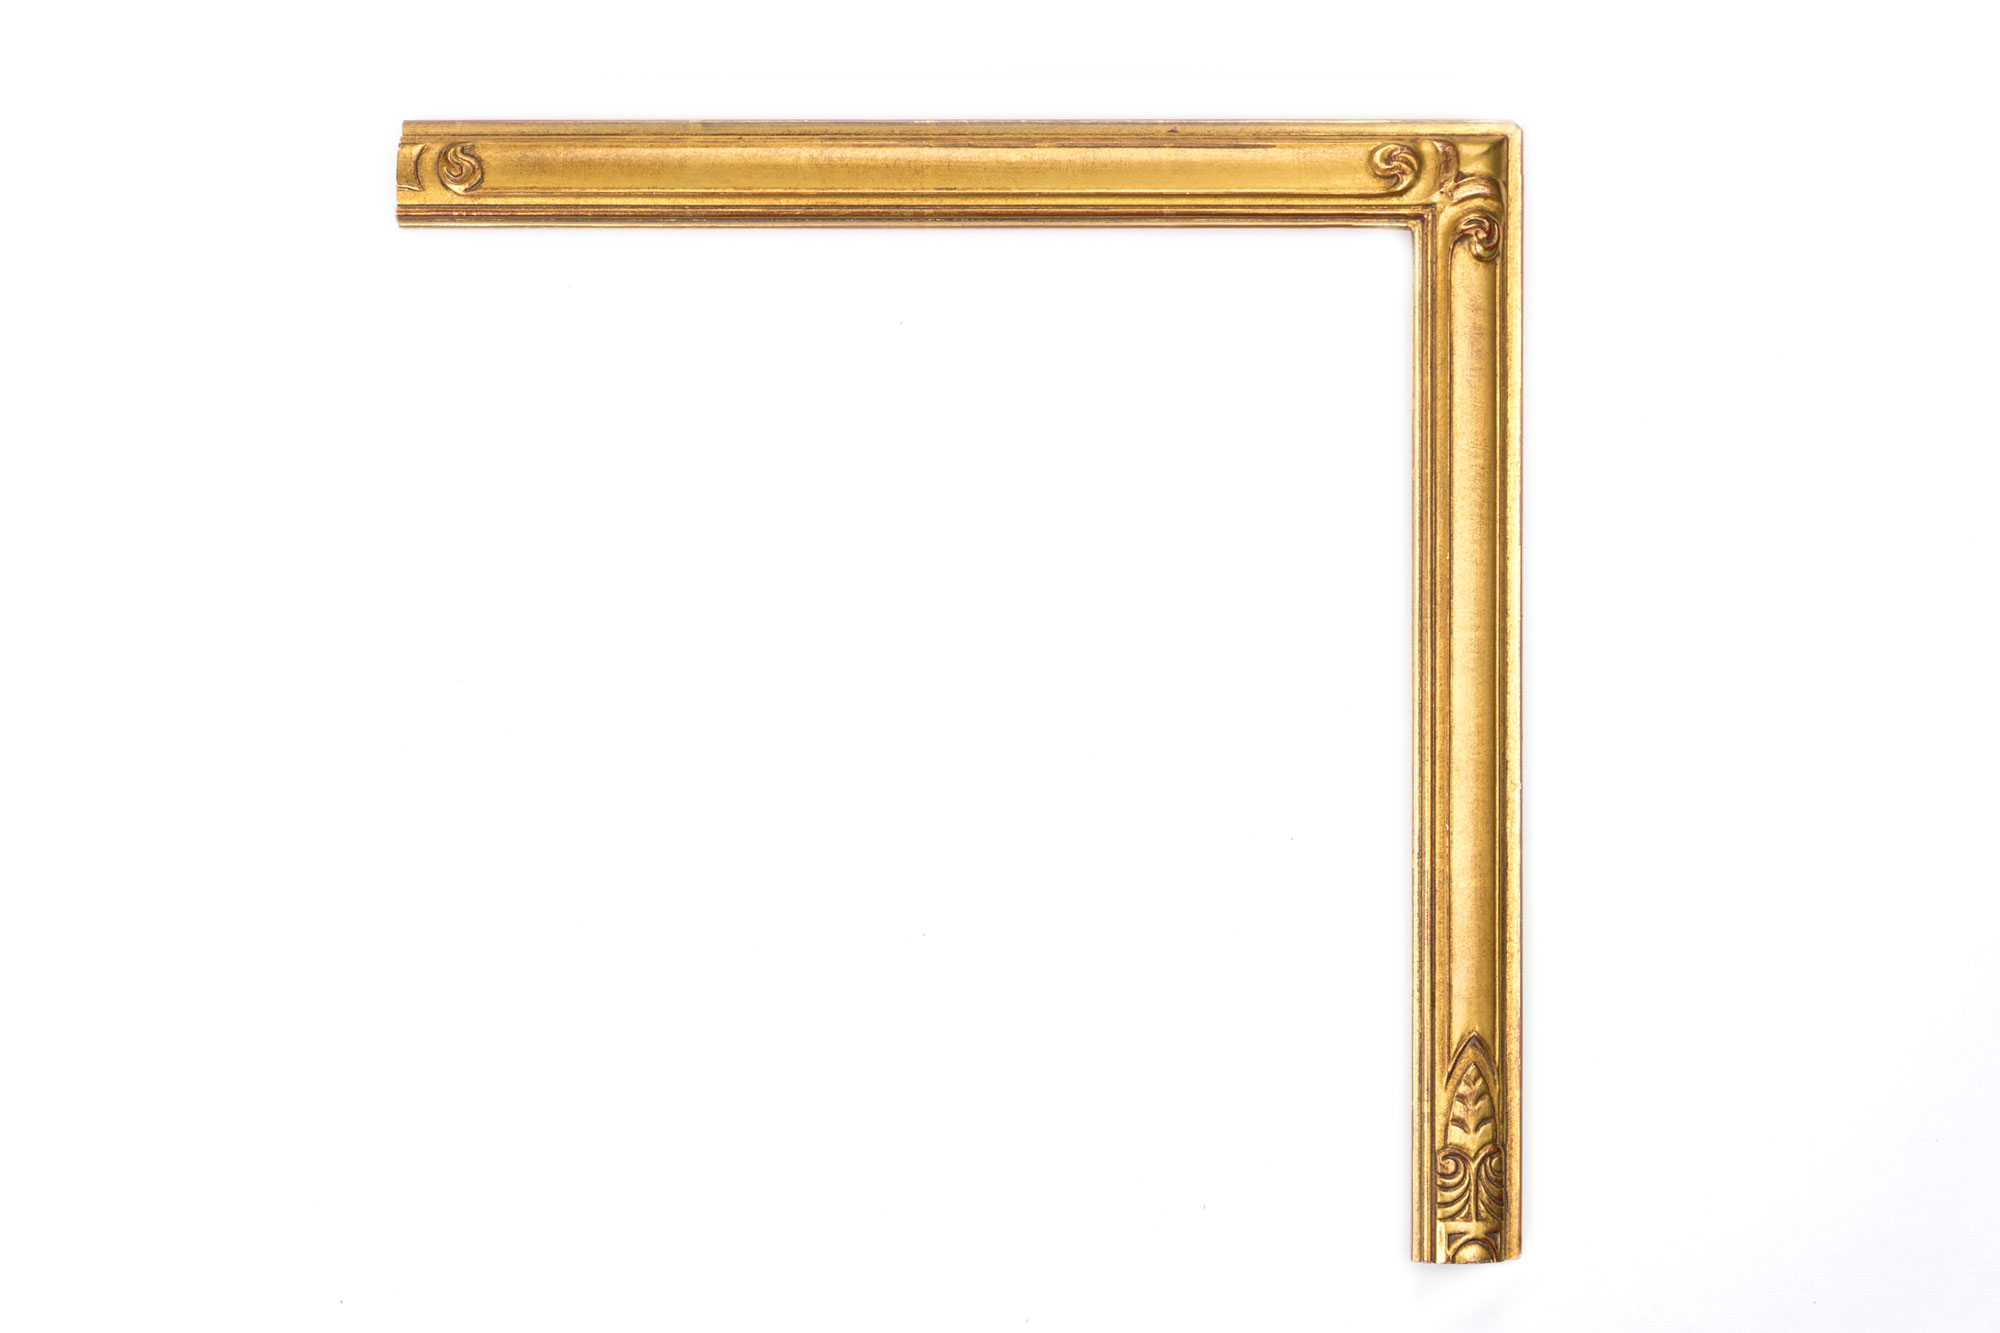 "Deco Corner Gold  1 1/2"" 22kt Gold Clamshell with hand-carved corners similar to an art deco style"